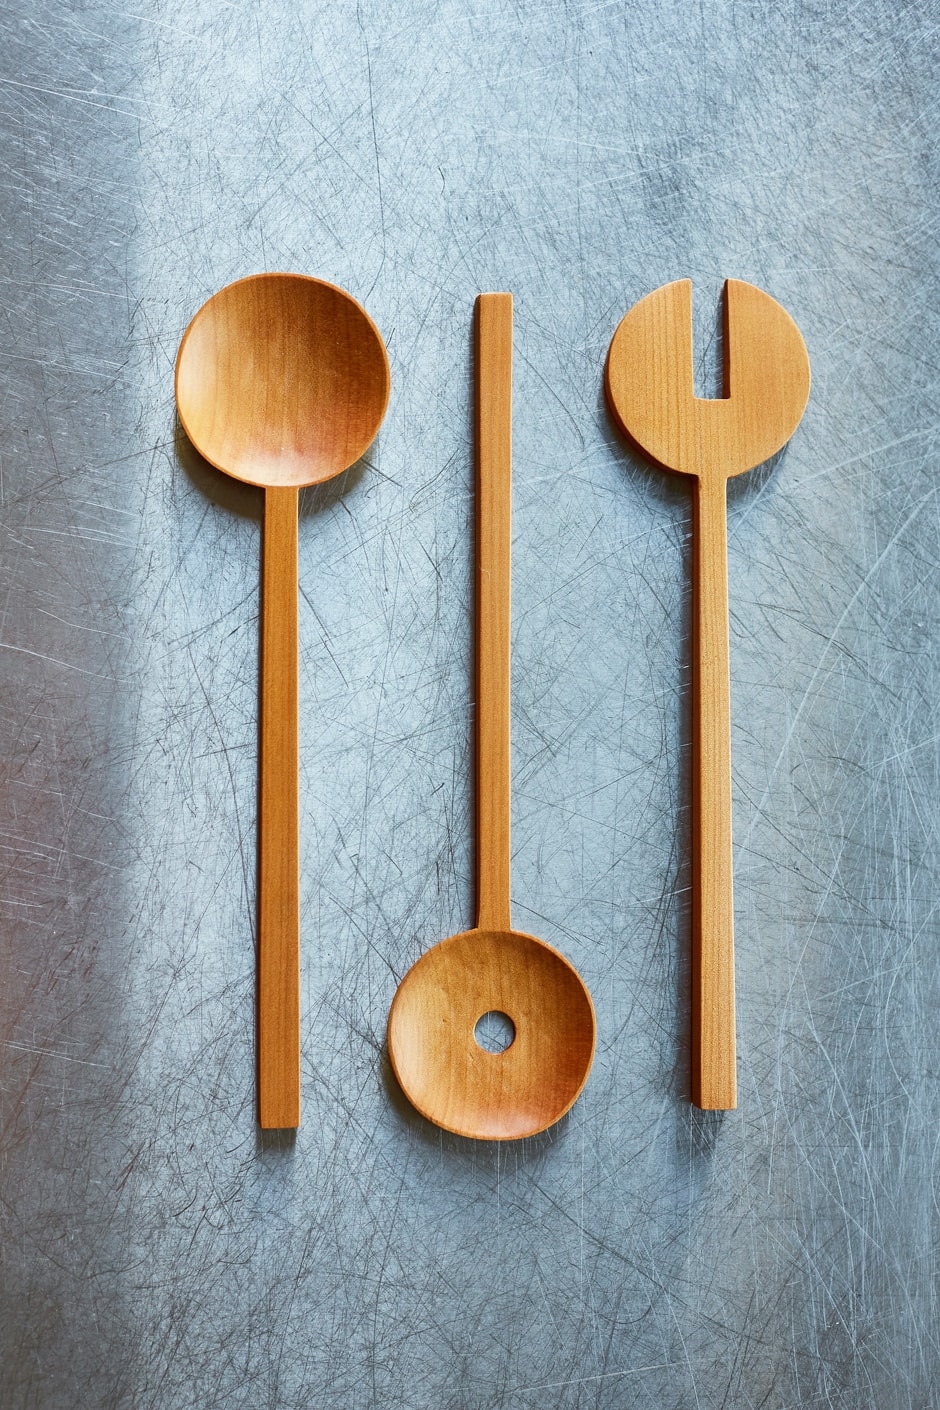 Handmade wooden cooking utensils by Courtney Petley | homestyle